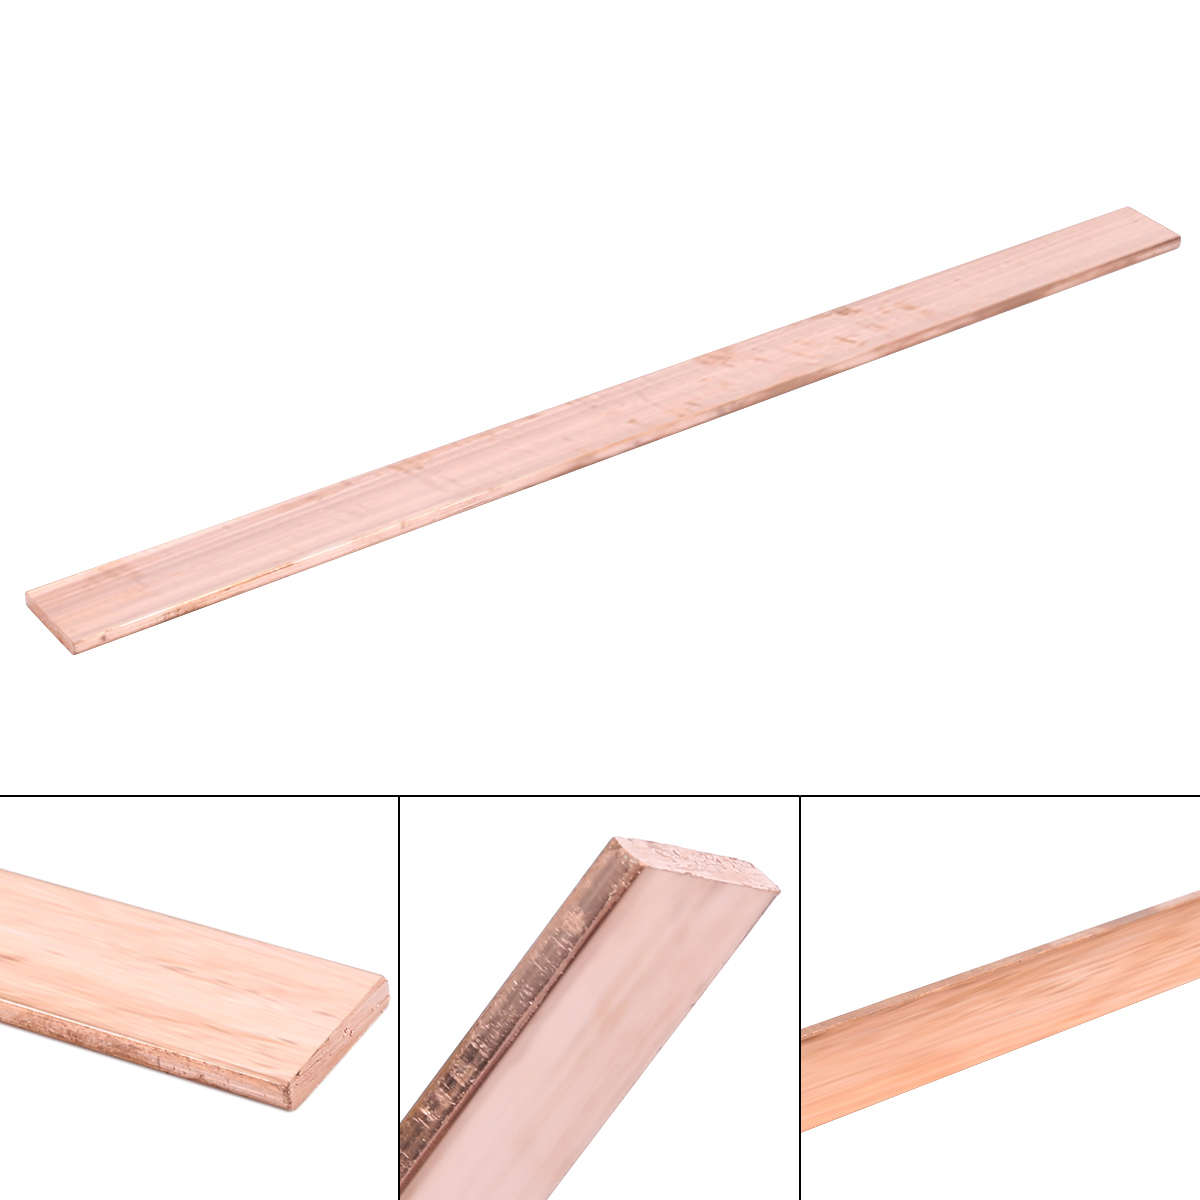 1pc 3mm Thickness Copper Strip 99.6% Pure Metal Sheet T2 Purple Cu Flat Bar 15*250mm Industry DIY Plate For CNC